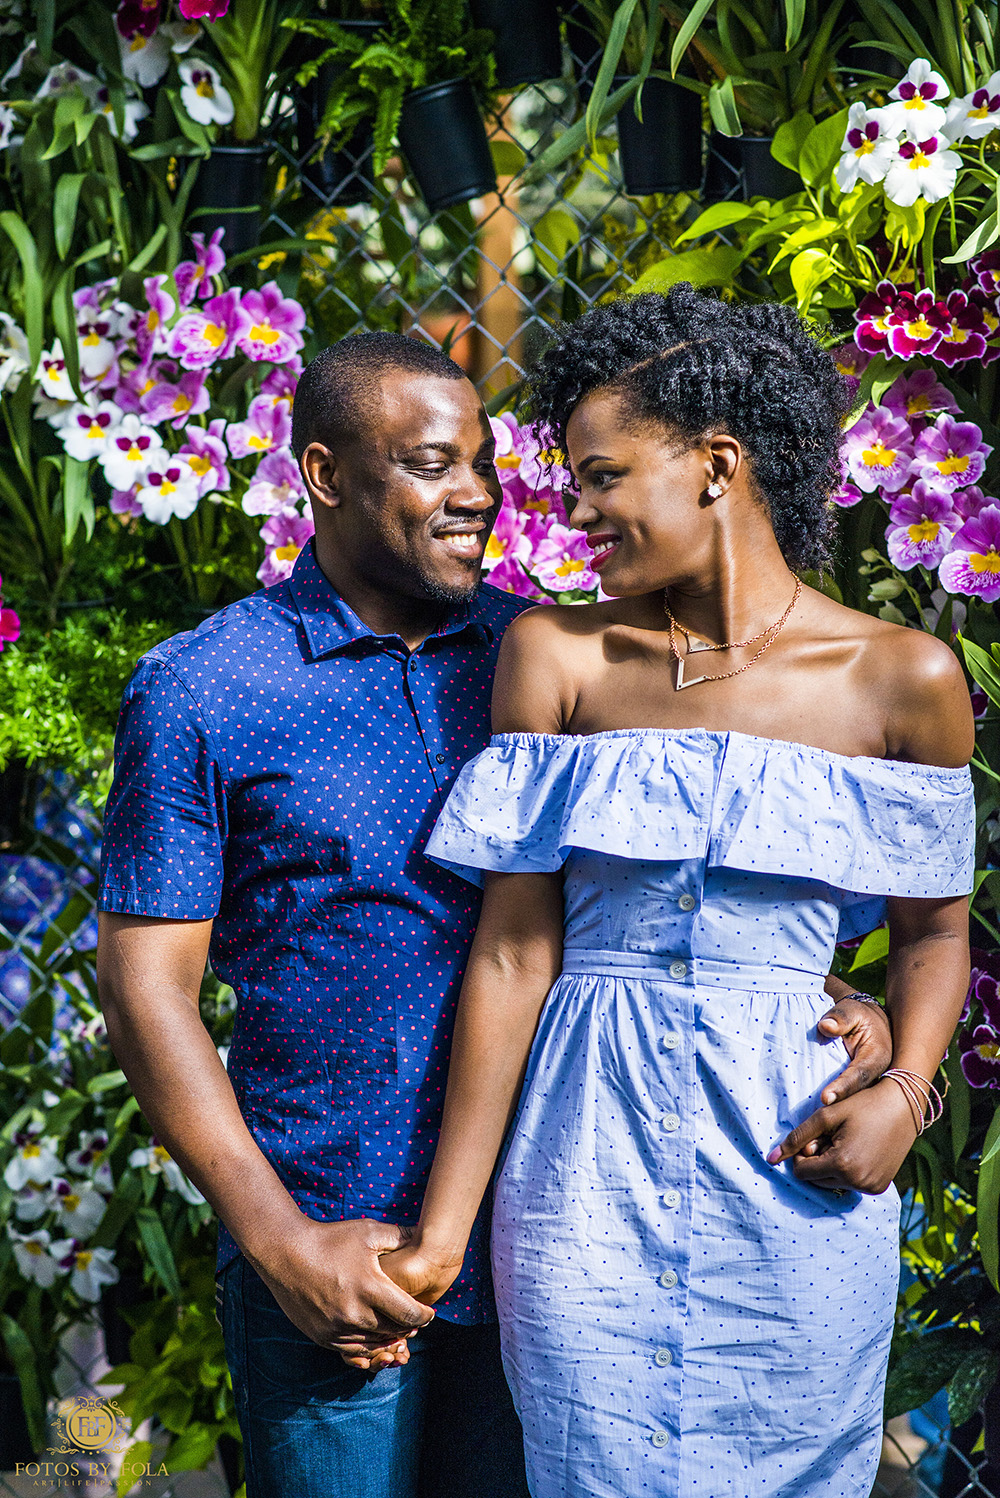 Fotos by Fola | Atlanta Wedding Photographer | Atlanta Botanical Garden | Atlantic Station 17th Street Bridge | Atlanta Skyline Engagement Shoot